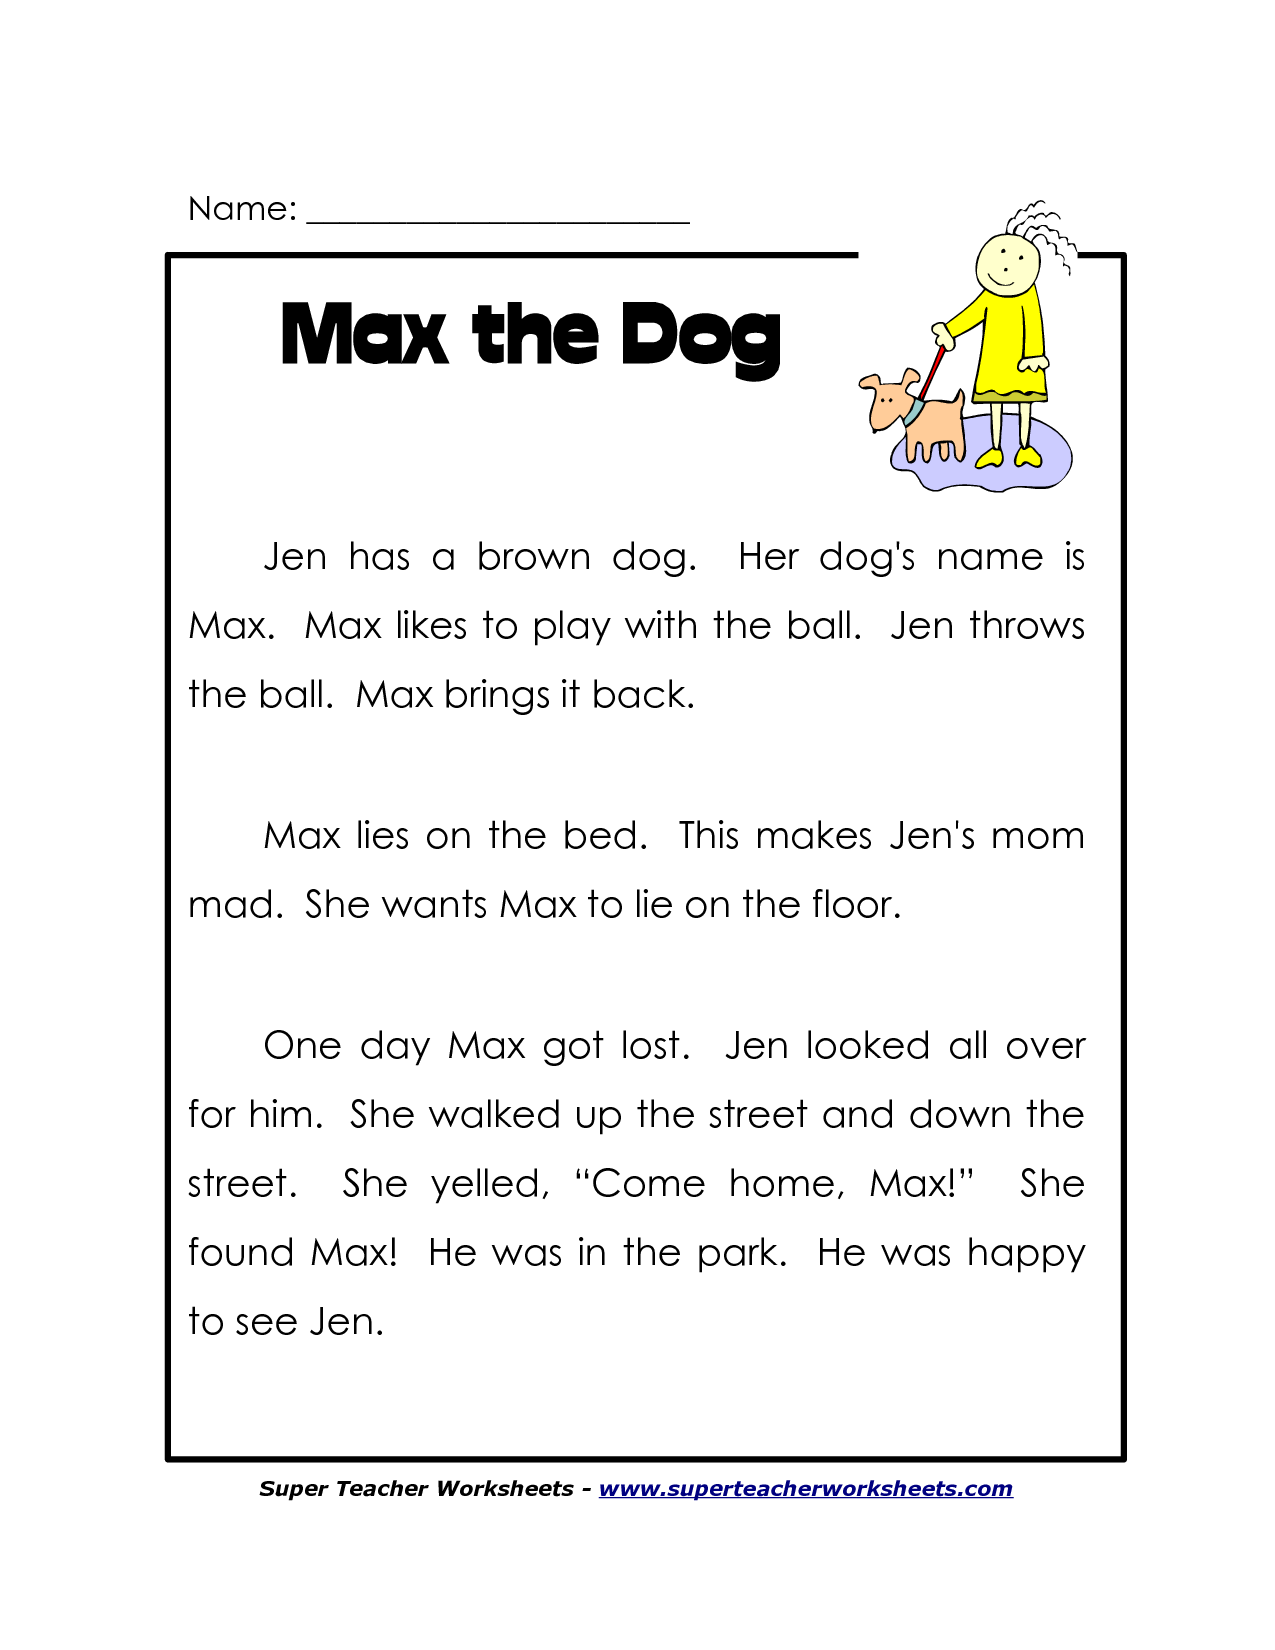 Worksheet Reading Passage For 1st Grade reading worksheets for 2nd grade hd wallpapers download free tumblr